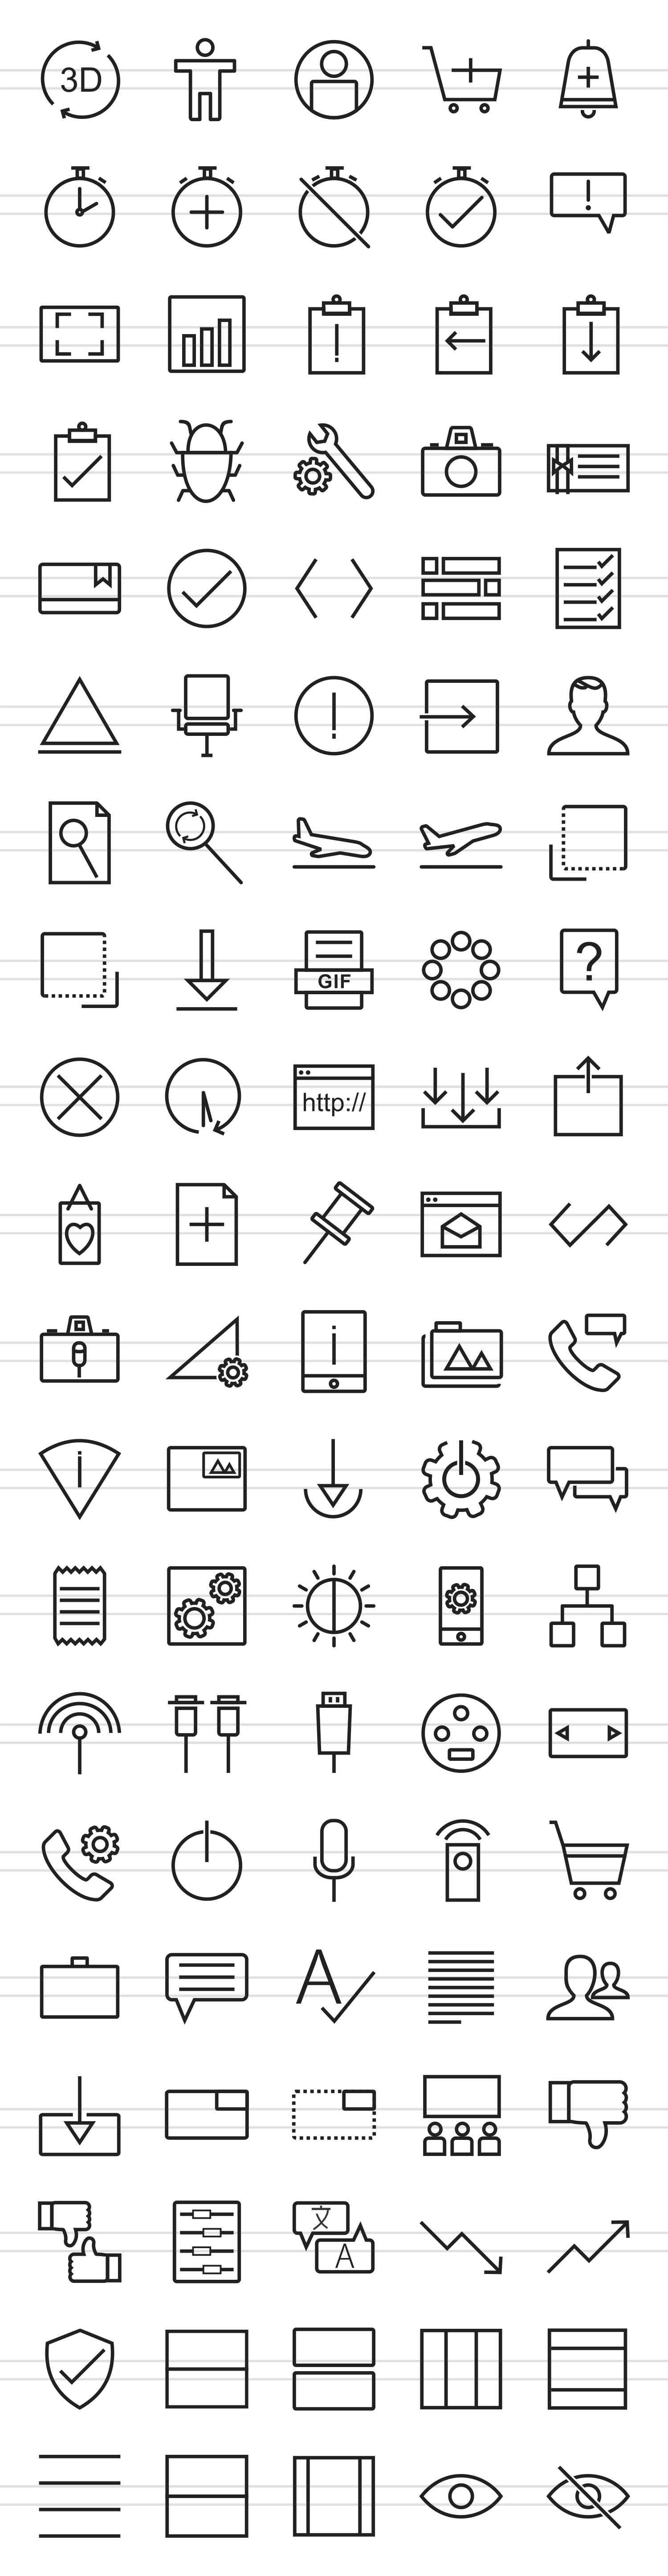 100 Material Design Line Icons example image 2